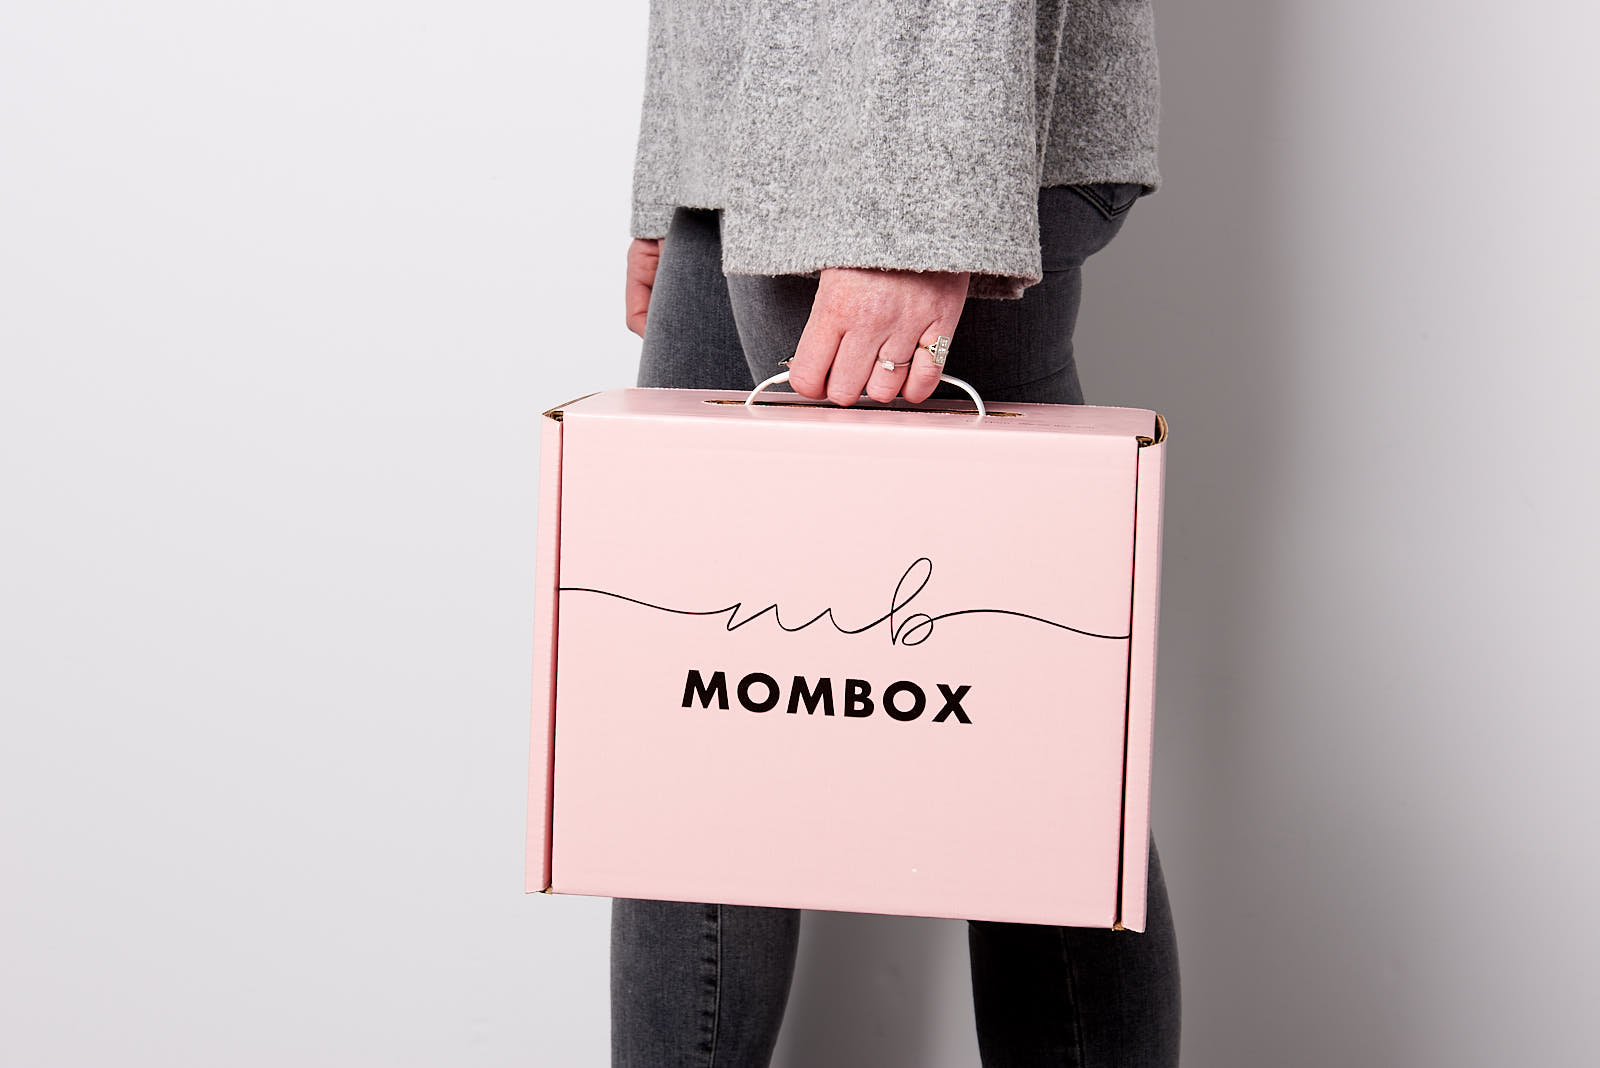 MomBox_Girl_Carrying_Boxes_14 copy.jpg